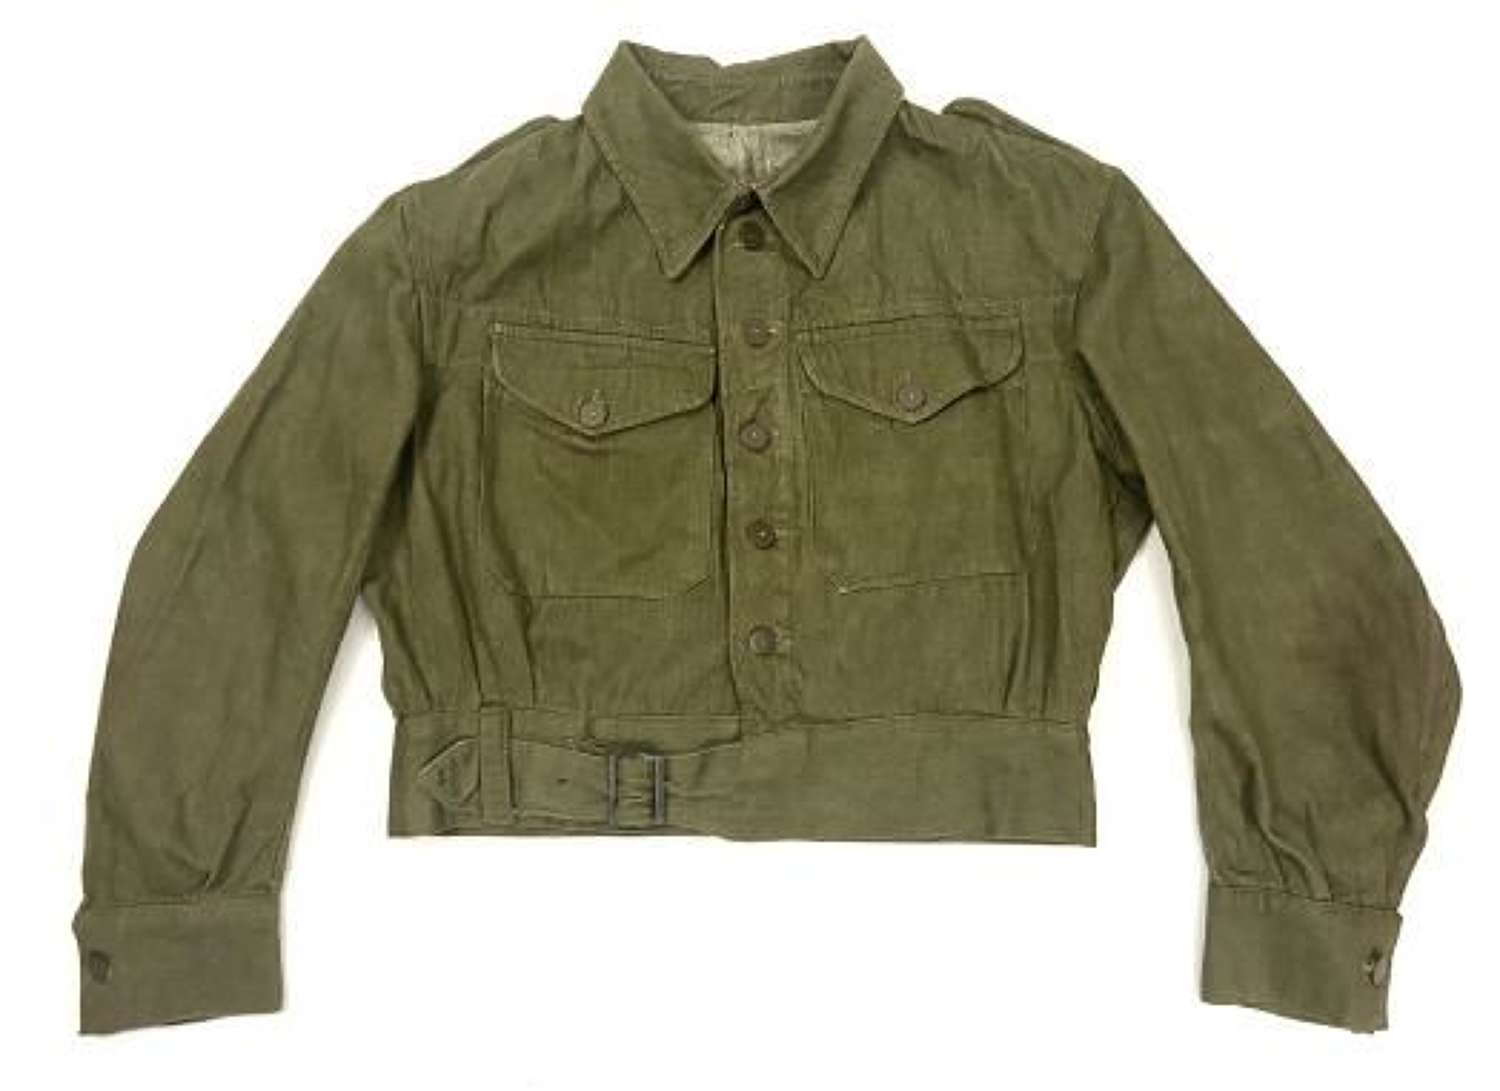 Original 1945 Dated British Army Battledress Blouse by 'Laznicka'